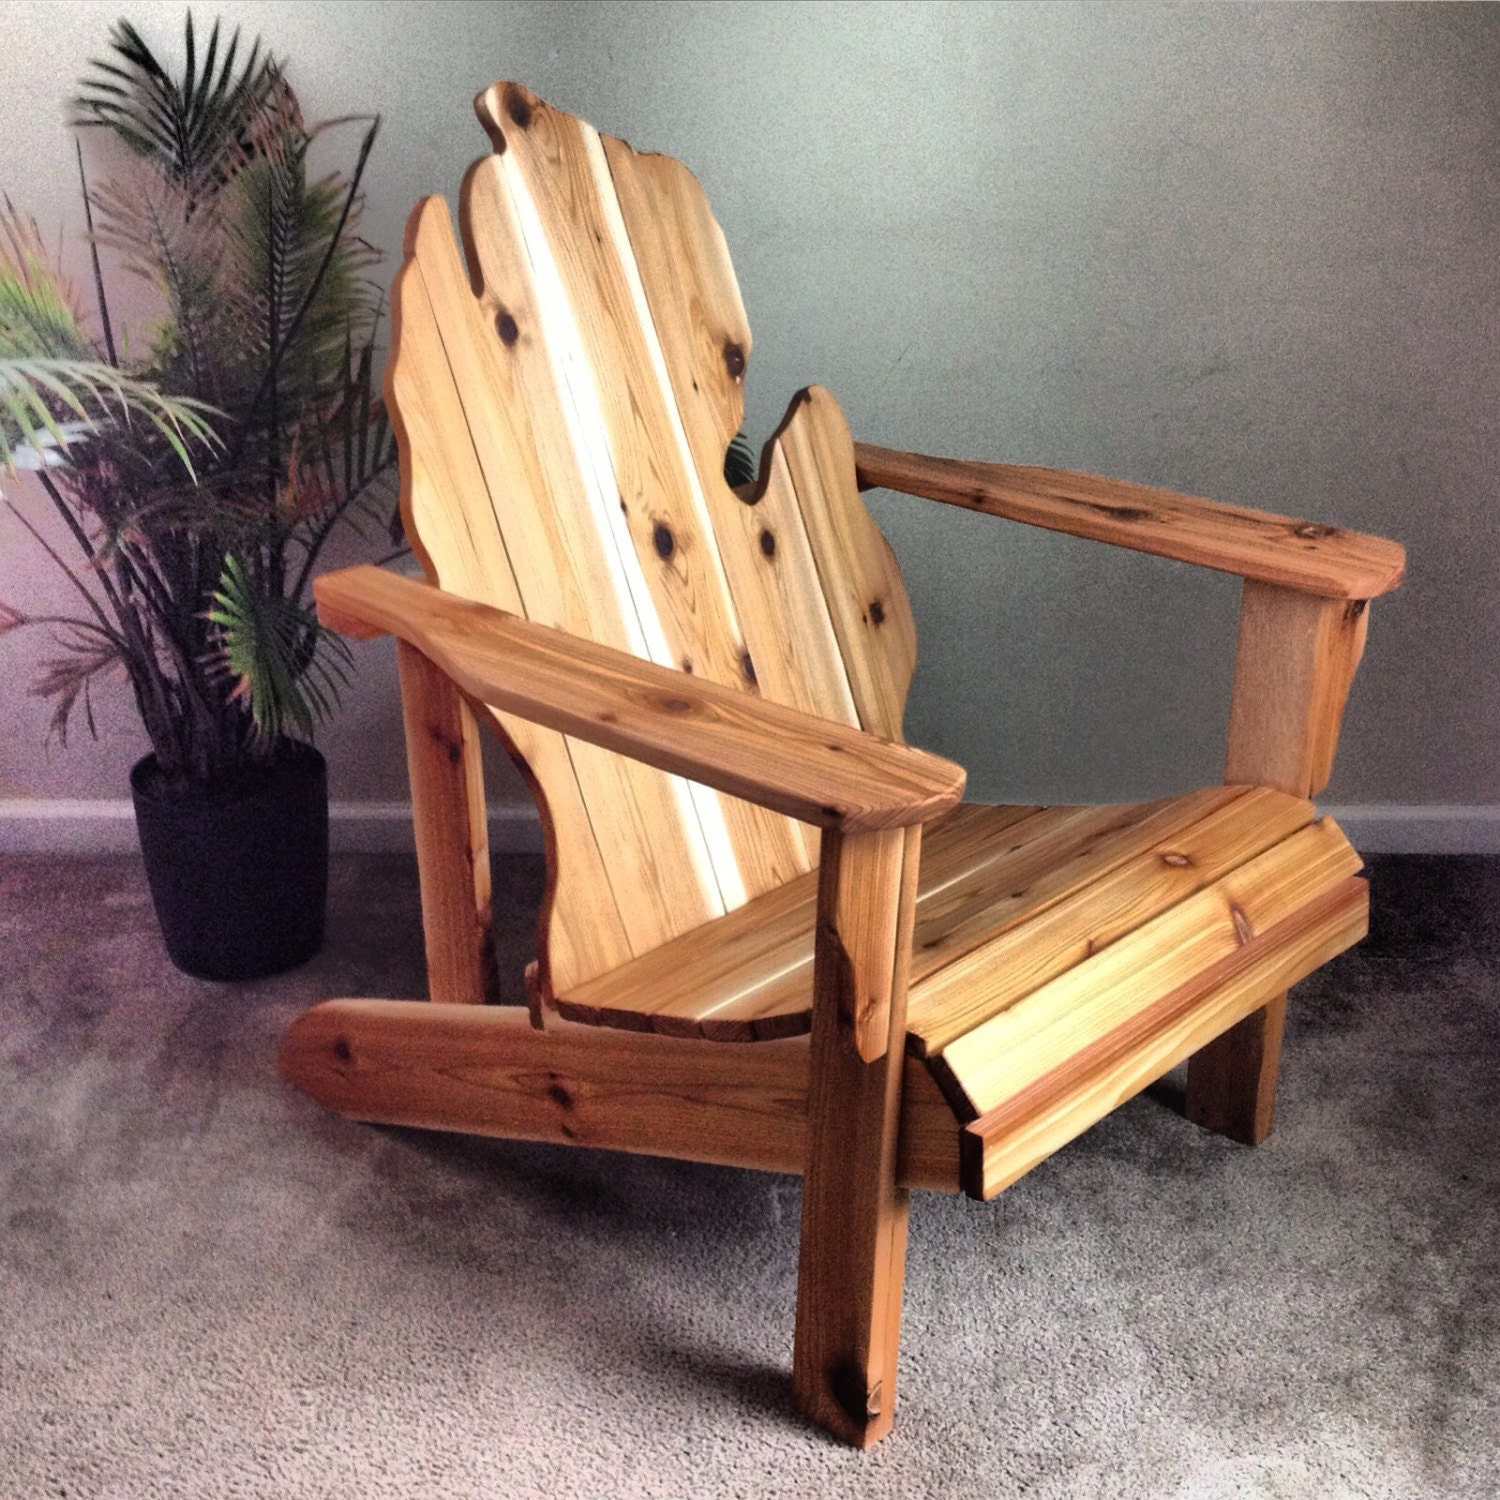 Michigan adirondack chair handmade wood furniture rustic patio What are chairs made of